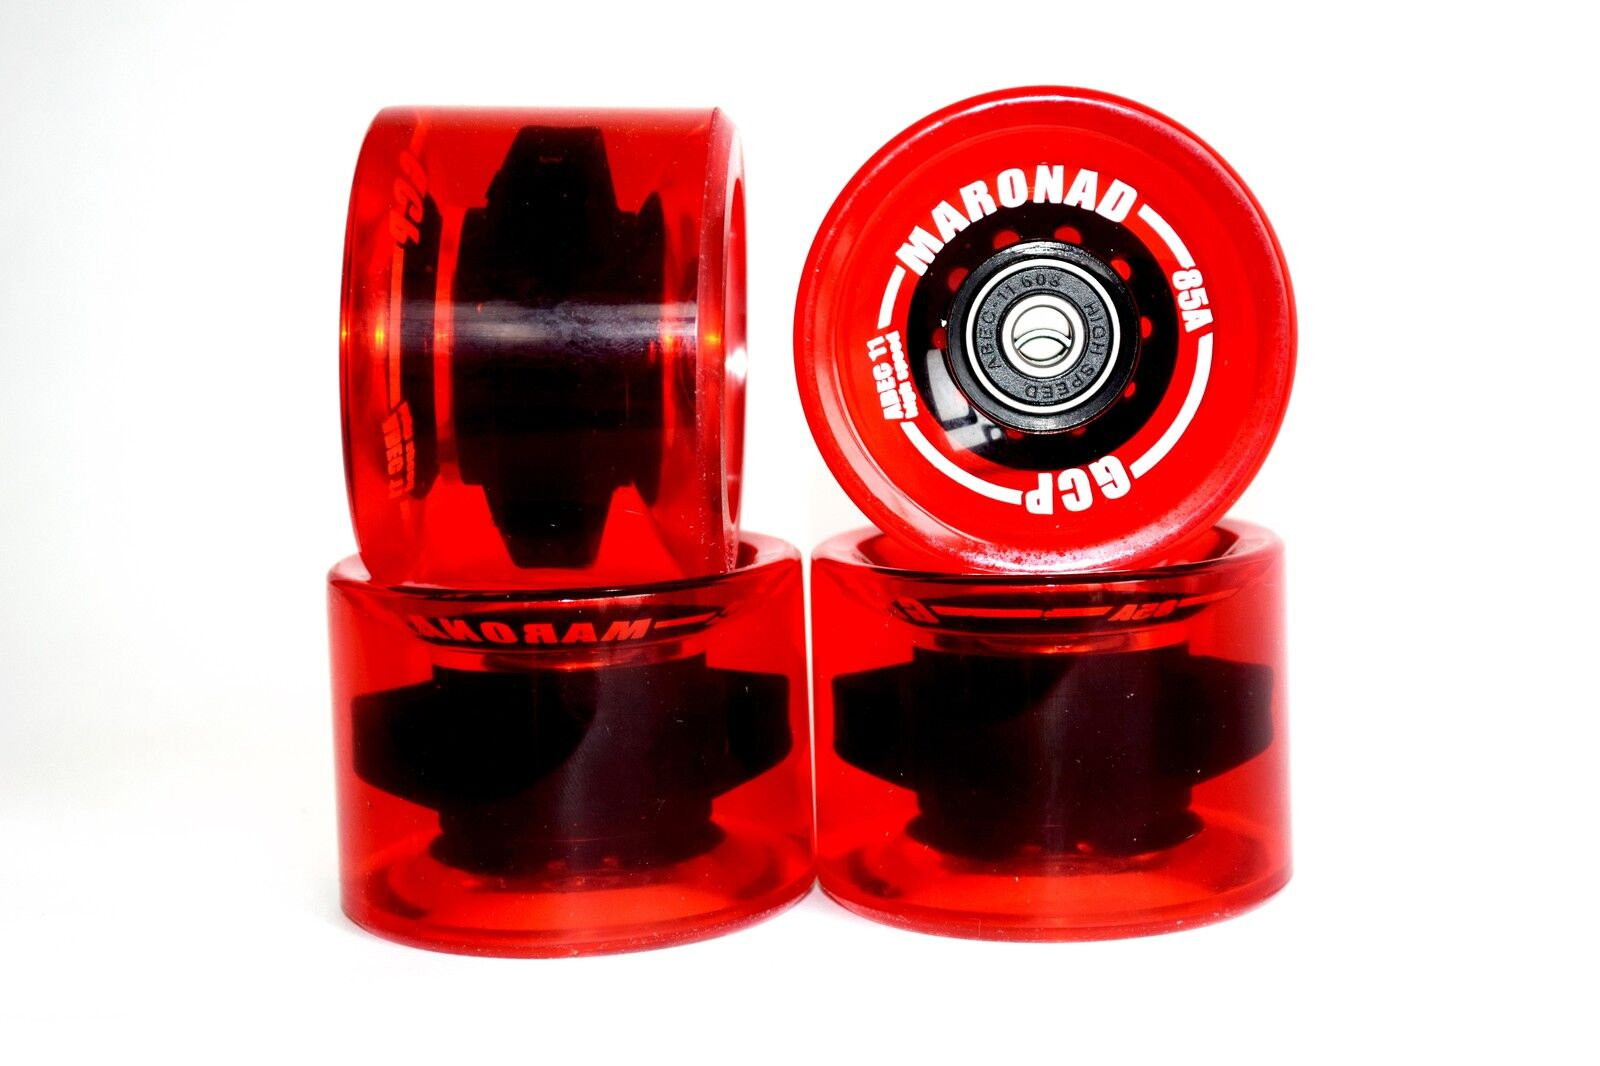 4 Pcs Longboard Wheels Wheels in Red 70x50mm 85a Includes Abec 11 and Spacers